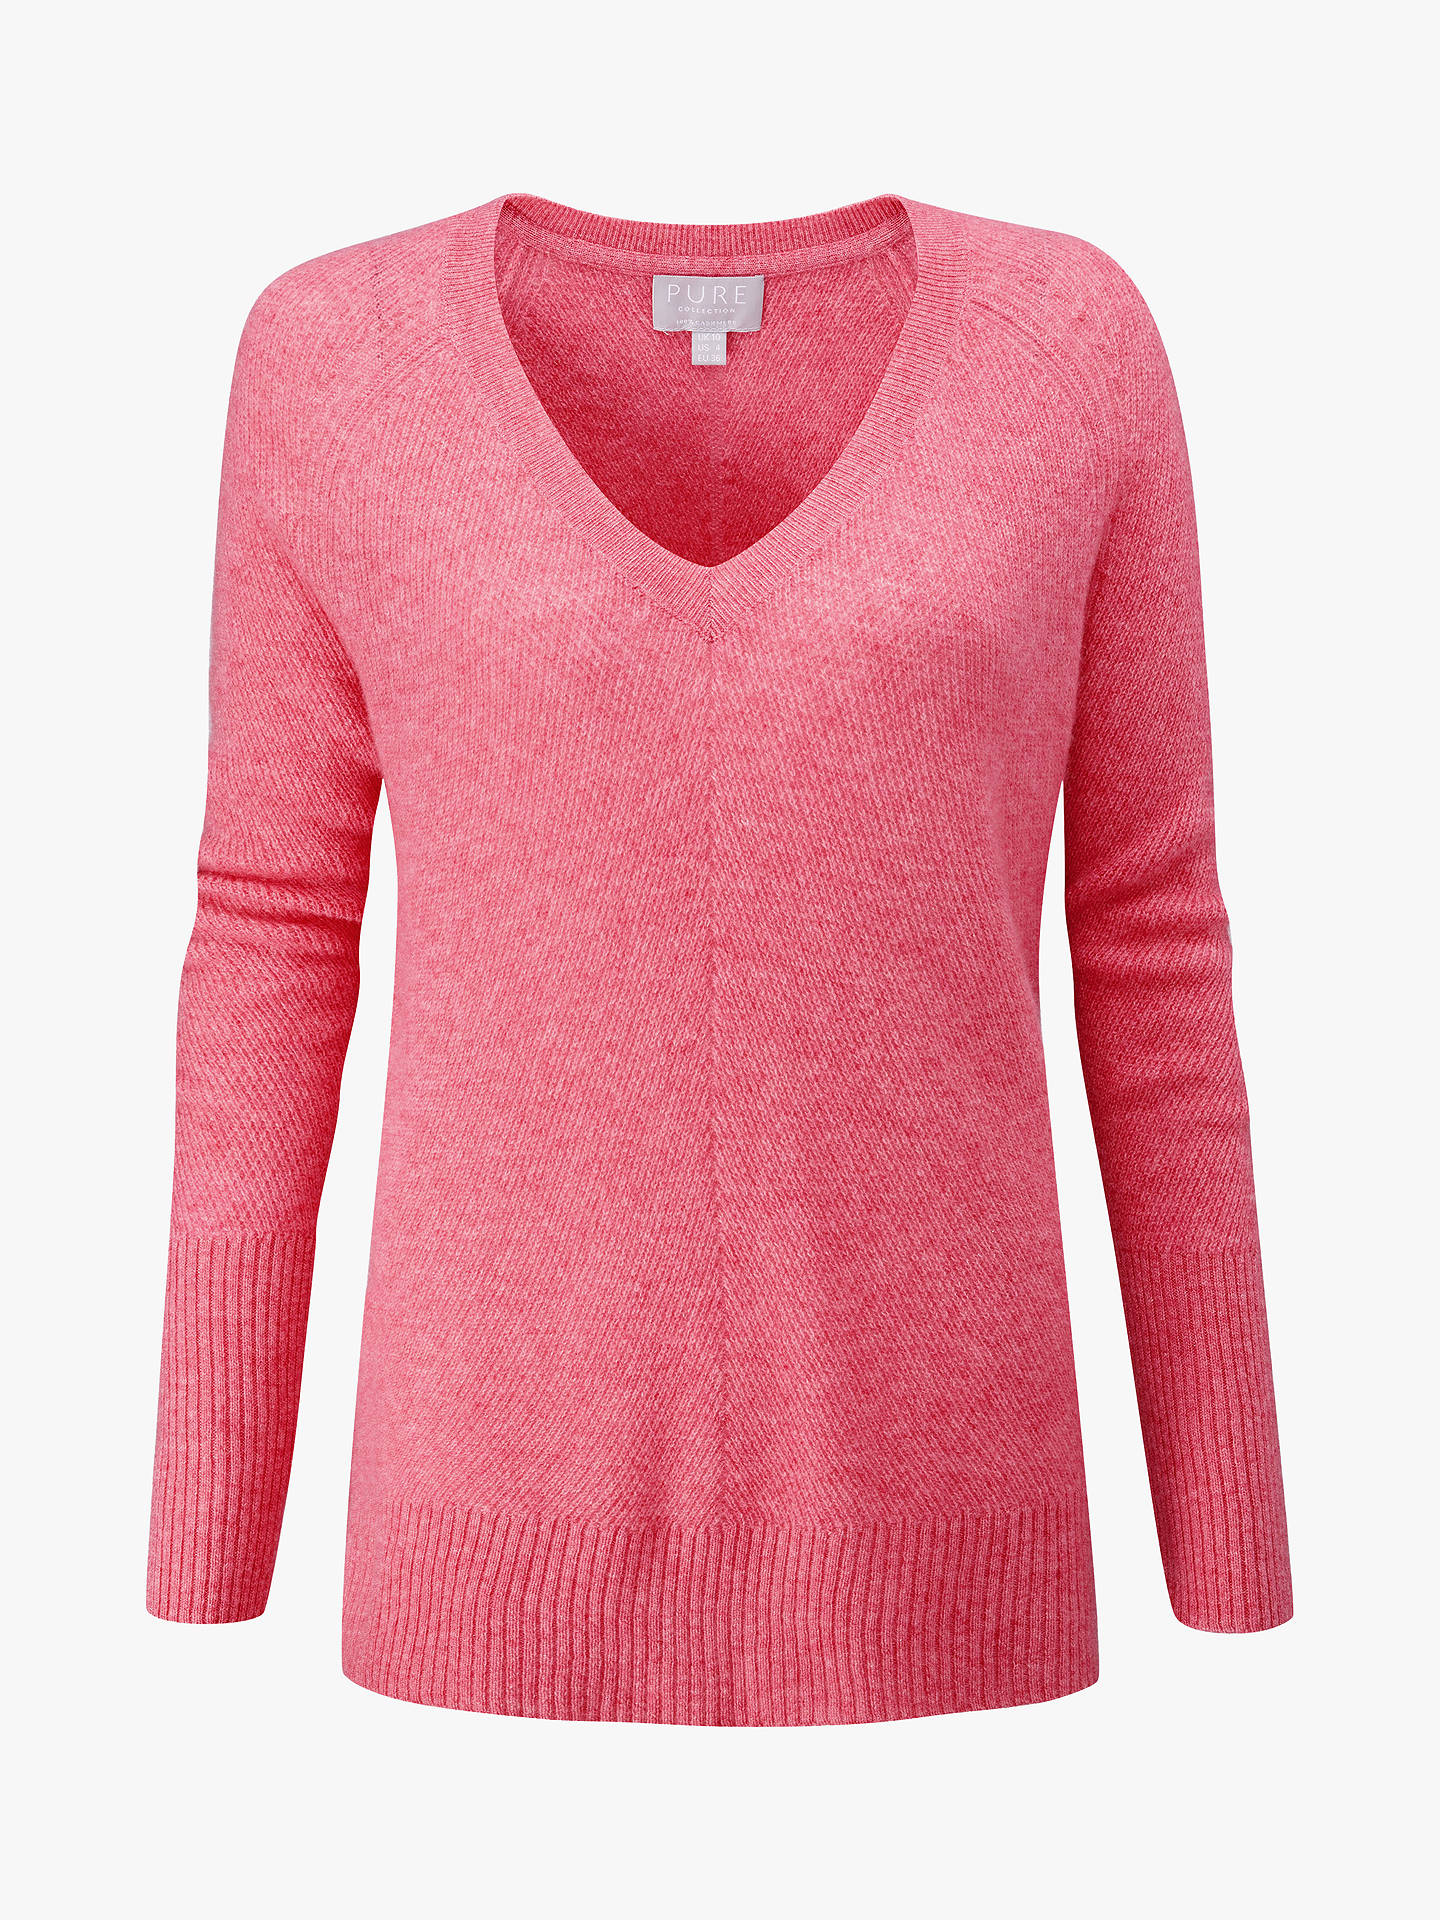 Buy Pure Collection Cashmere V-Neck Sweater, Heather Rose, 14 Online at johnlewis.com